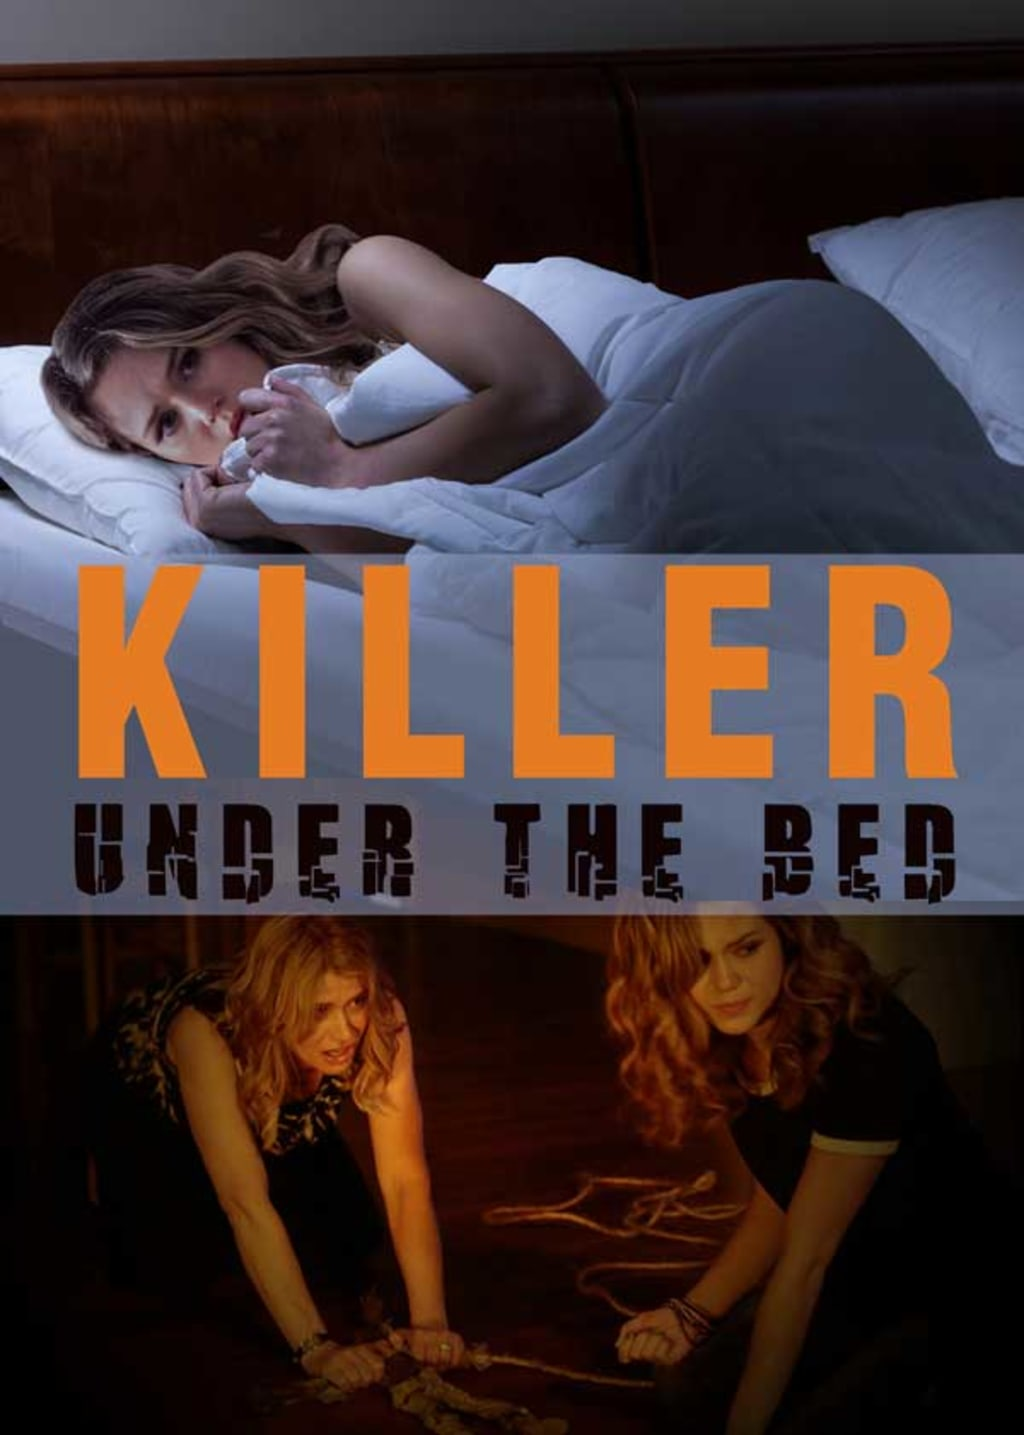 Lifetime Review: 'Killer Under the Bed'